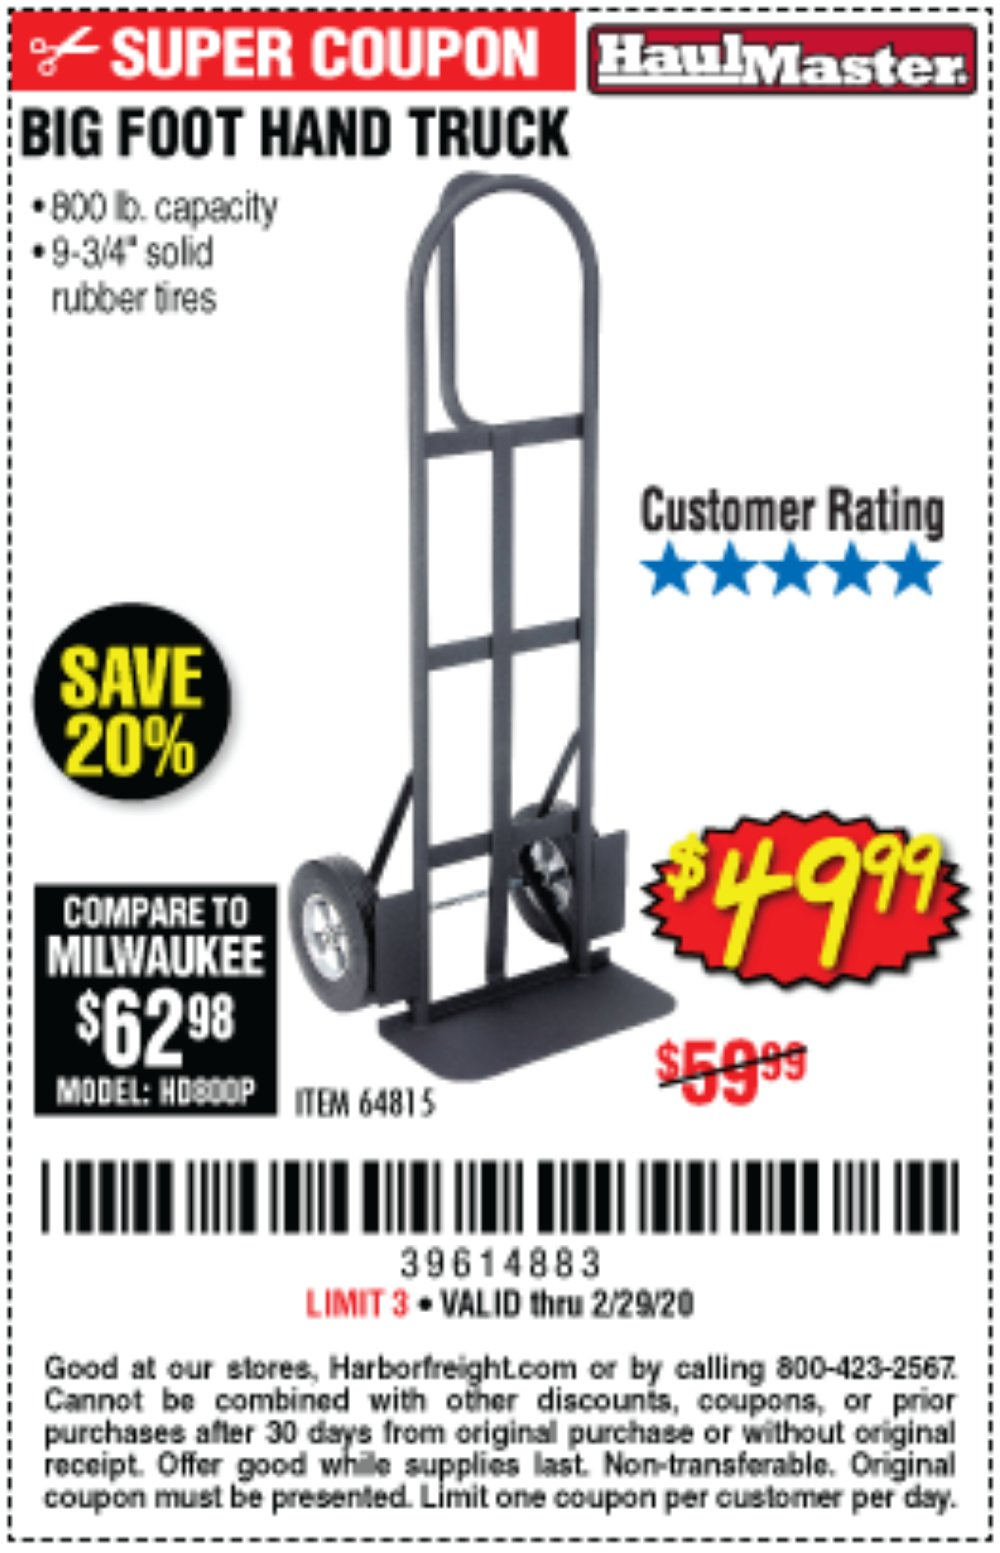 Harbor Freight Coupon, HF Coupons - 800 Lb. Capacity Big Foot Hand Truck